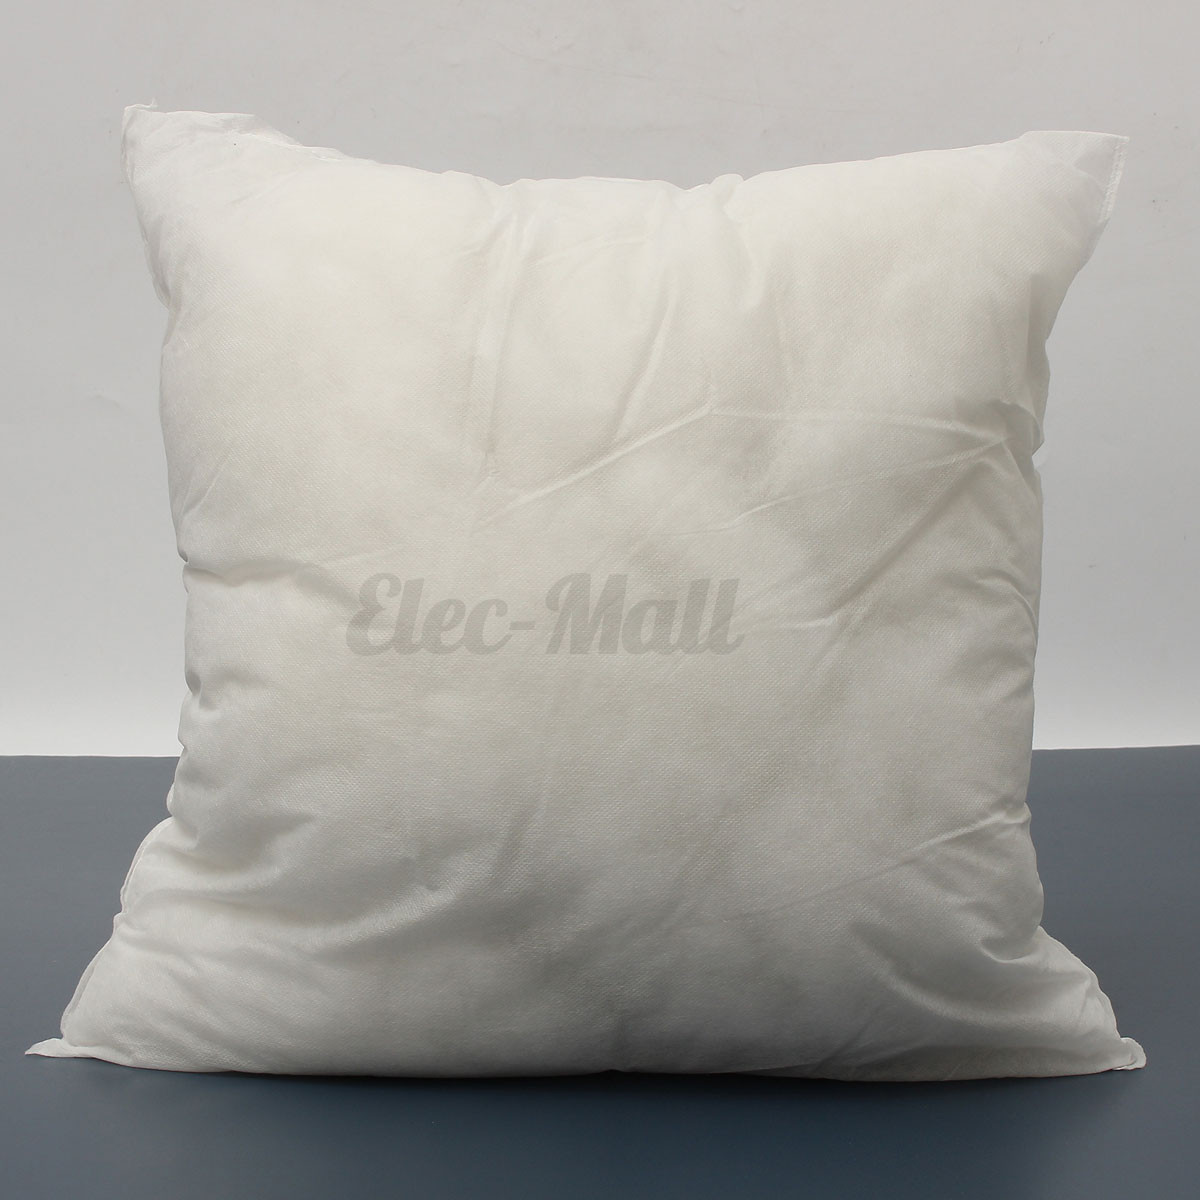 Sofa Cushions That Hold Up Multi-size Cotton Throw Hold Pillow Inner Pads Inserts